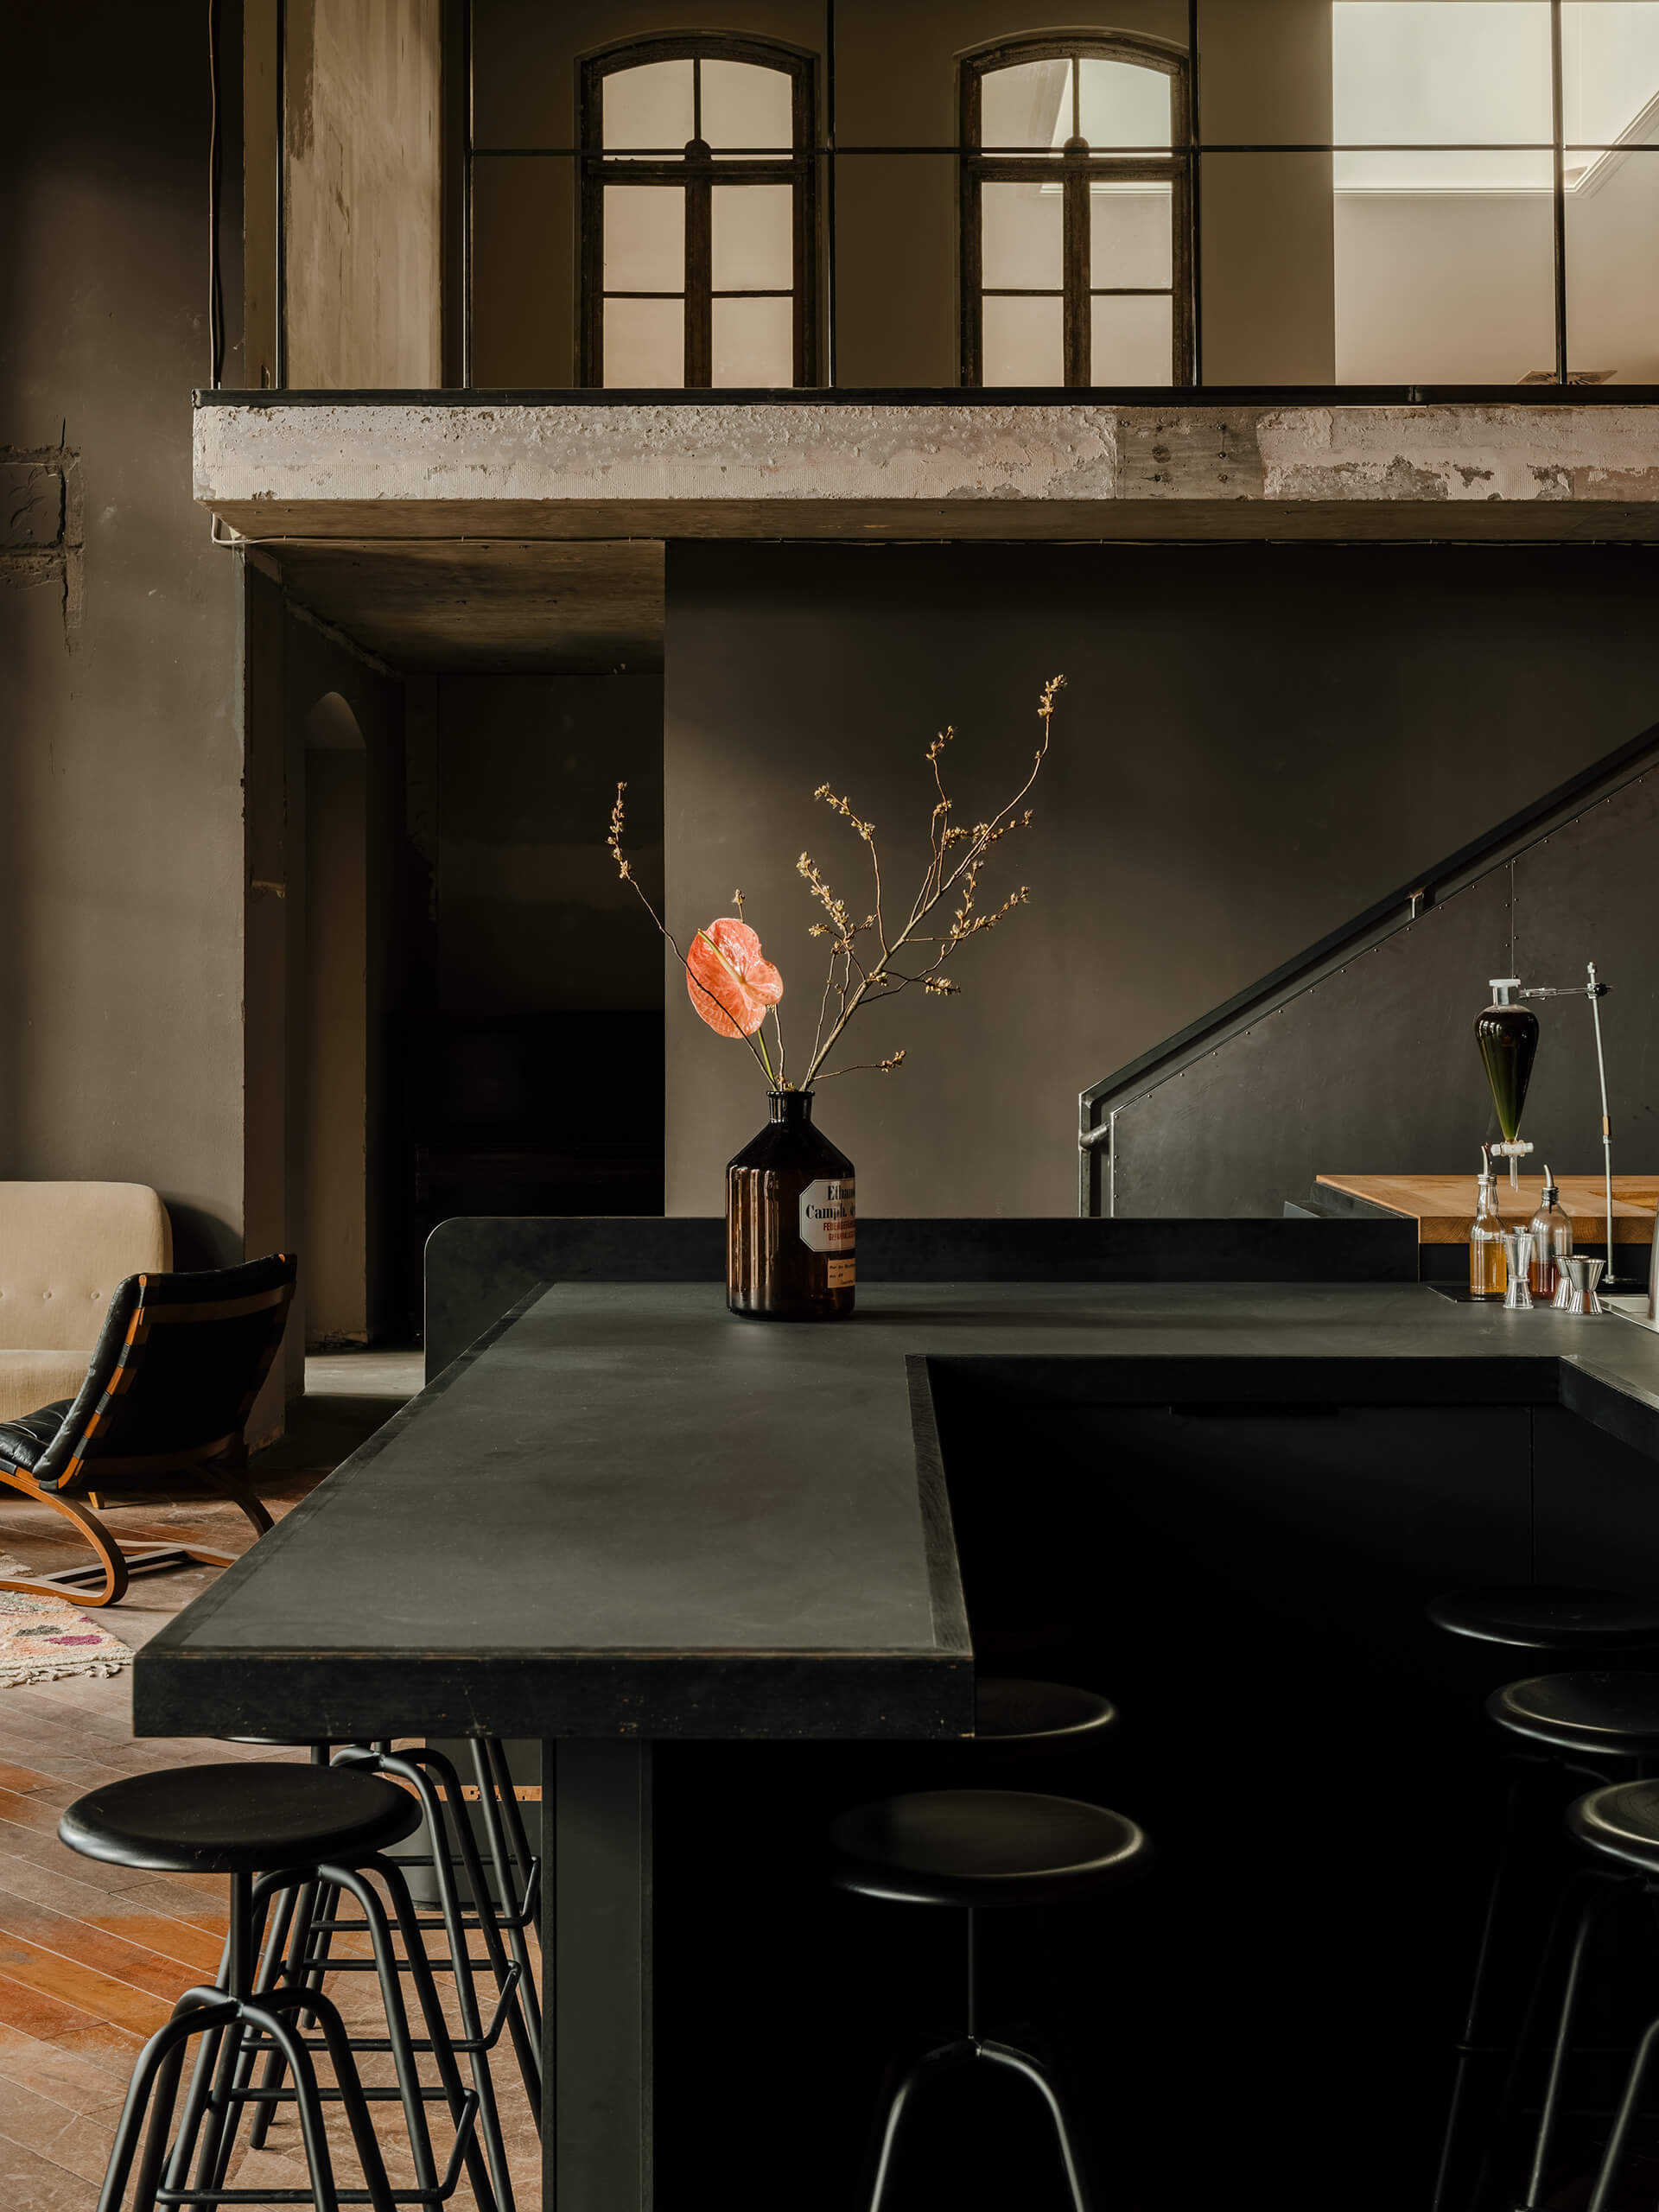 The solid black bar countertop with black stools | KINK Bar and Restaurant by Oliver Mansaray and Daniel Scheppan | STIRworld